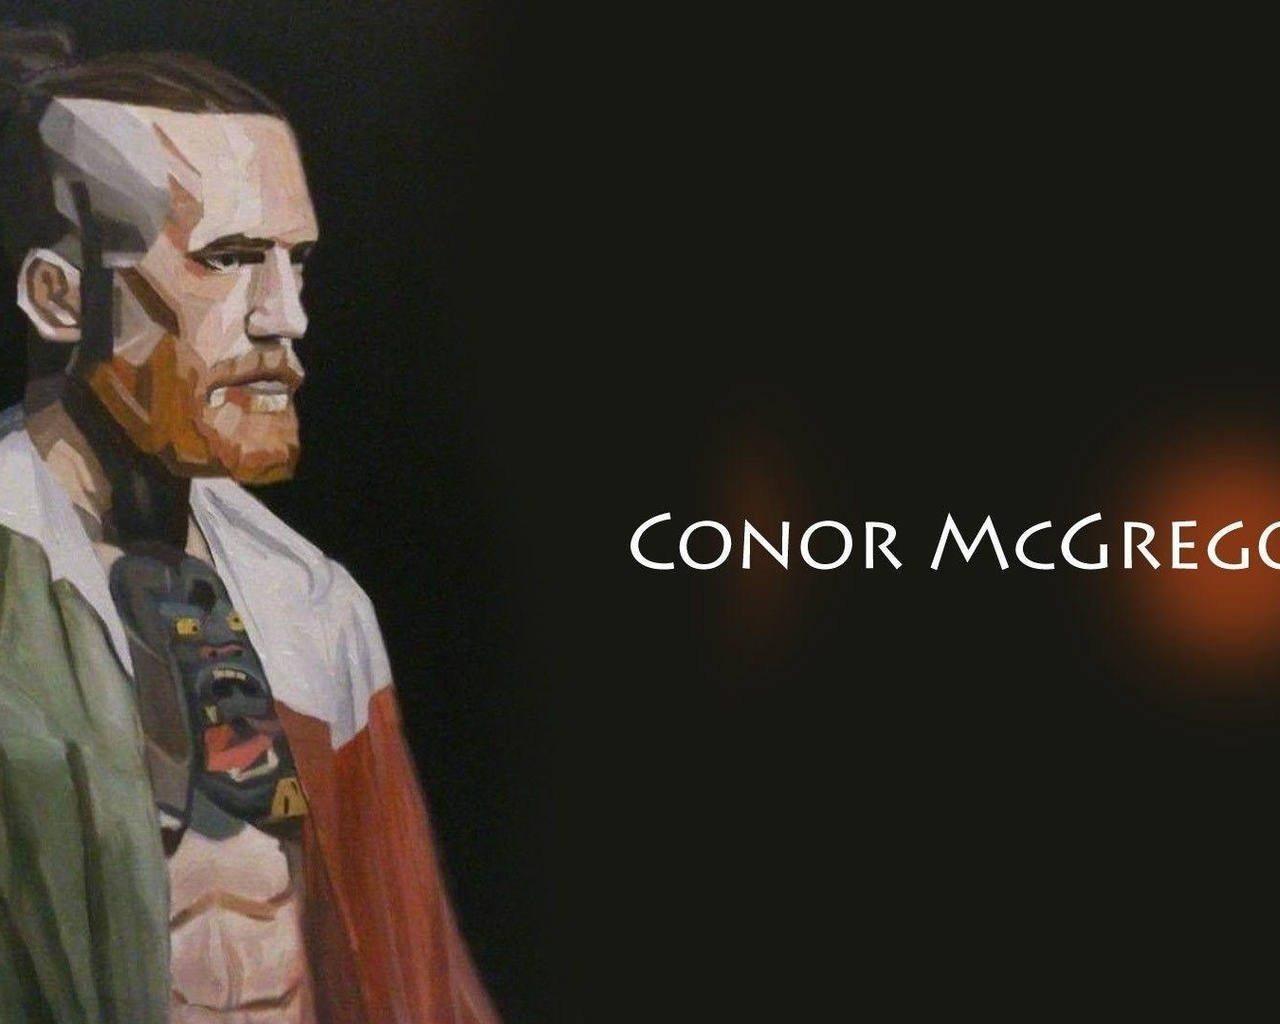 mcgregor, арт, конор макгрегор, conor mcgregor, постер, art, poster